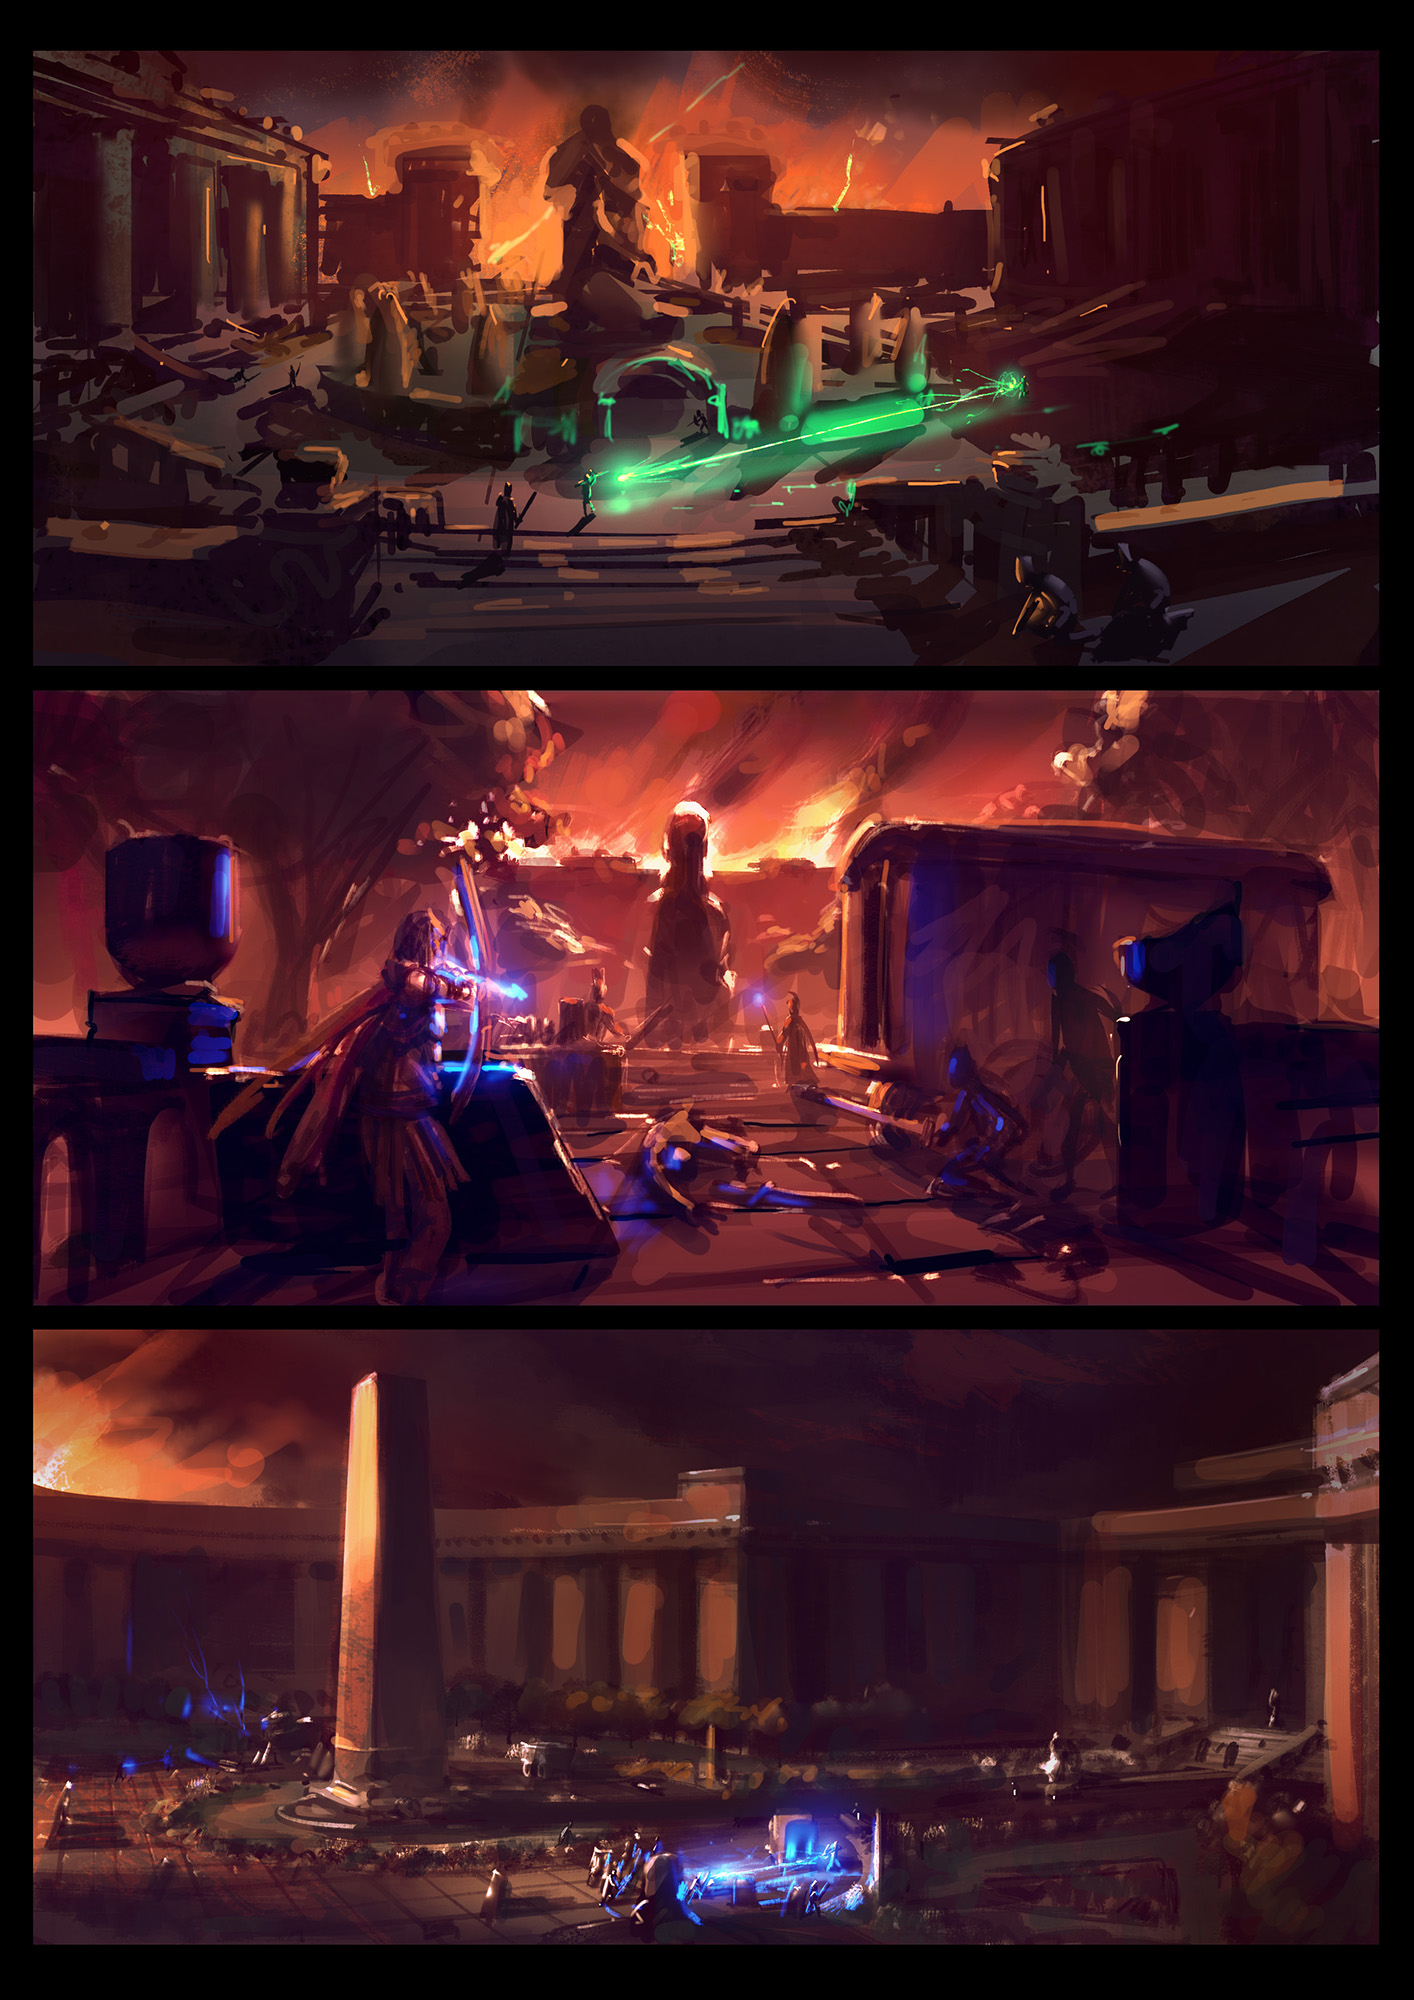 Environment_Prologue_CourtyardBattle_Thumbnails.jpg